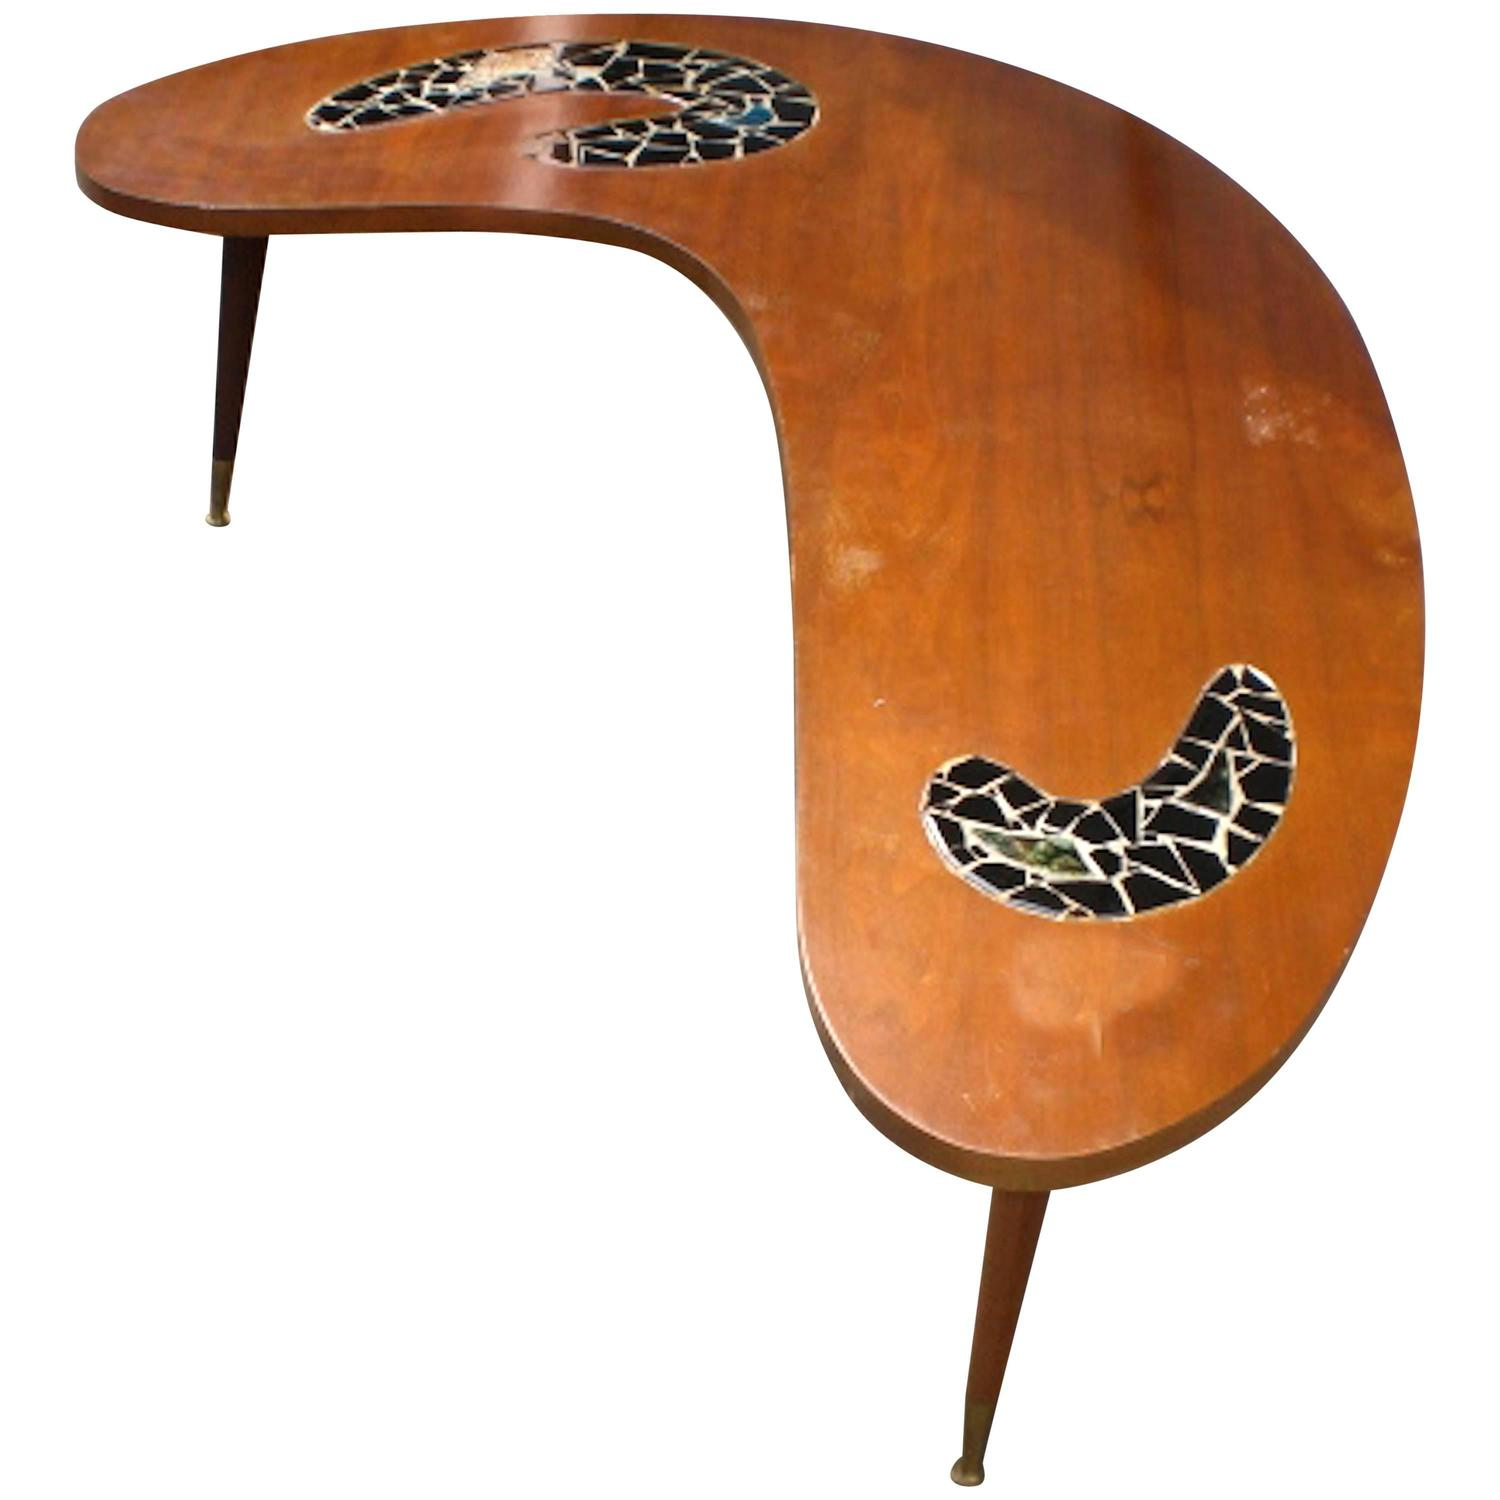 Kidney Coffee Table With Tile Design For Sale At 1stdibs